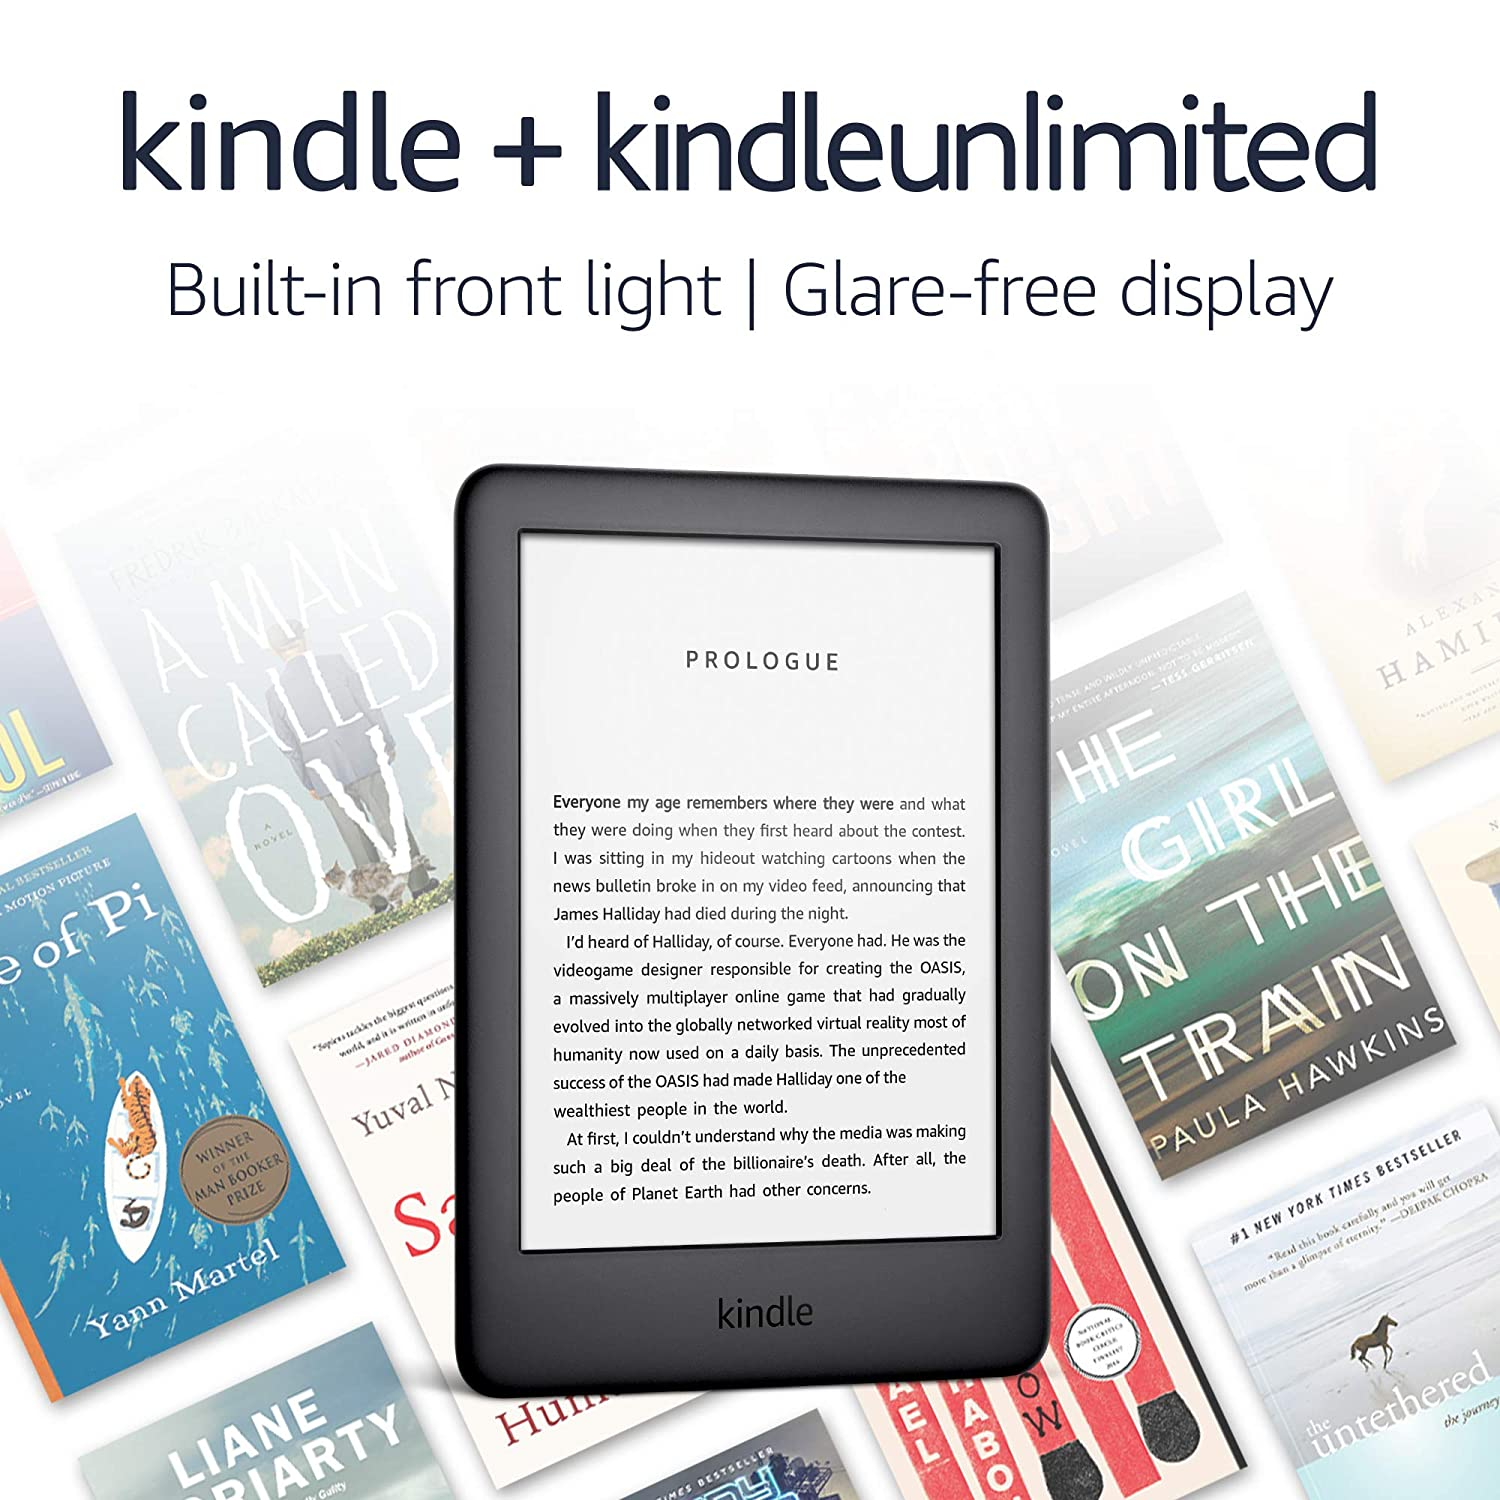 Kindle - 4 GB, Wi-Fi - Includes Special Offers + Kindle Unlimited